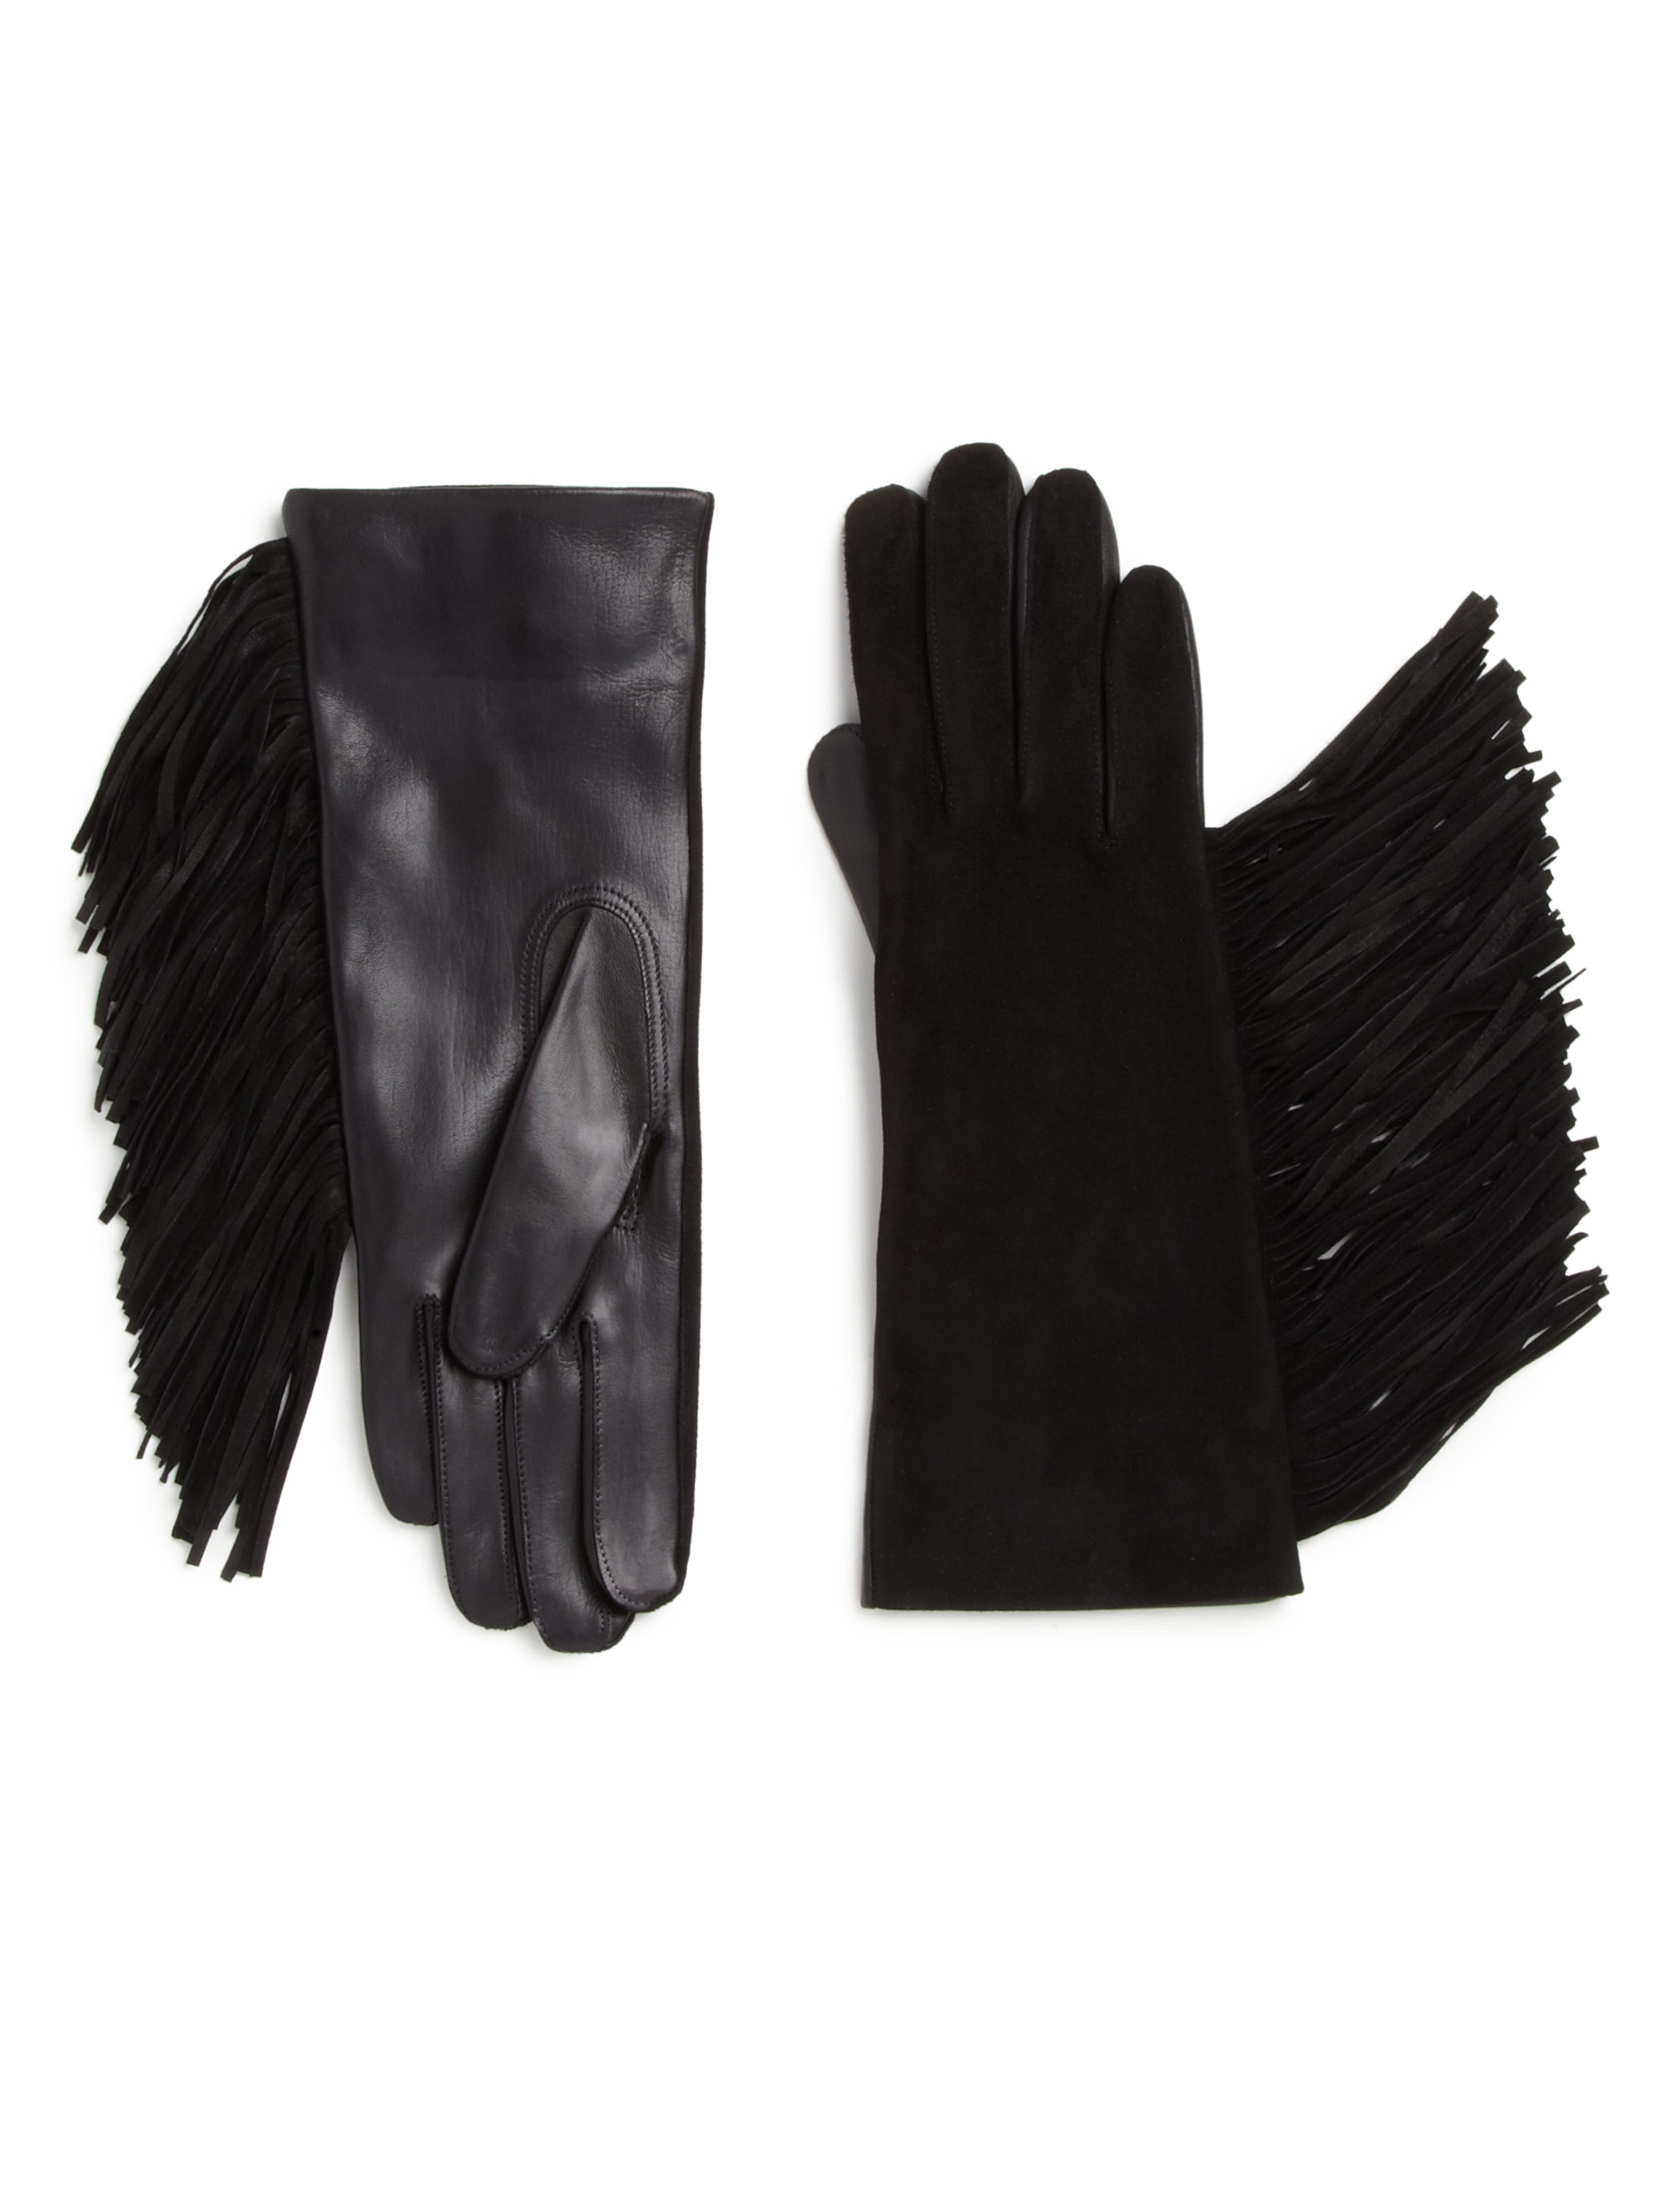 Maison Fabre Fringed Suede Leather Gloves In Black Lyst